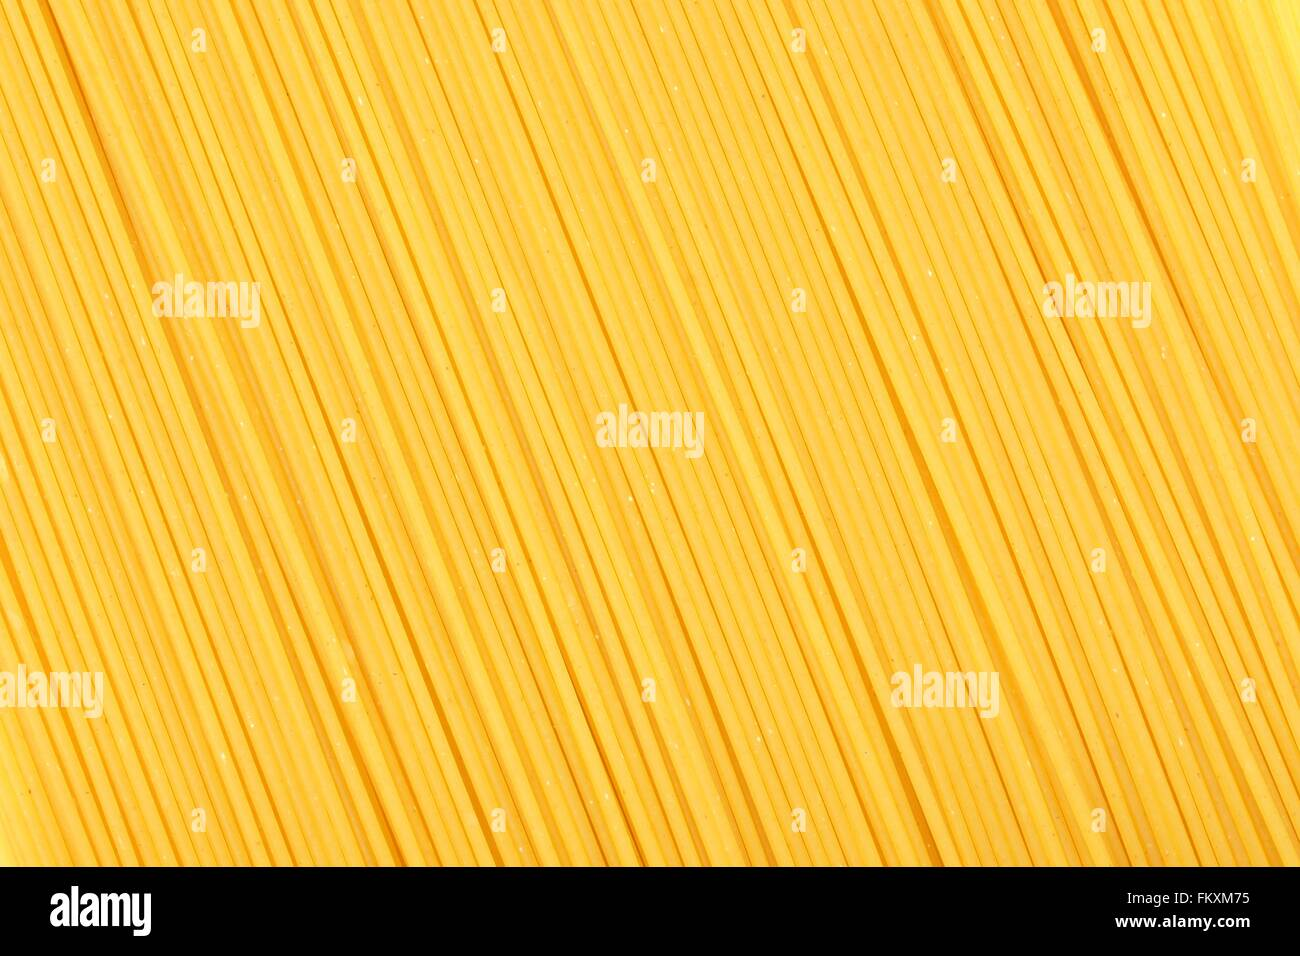 Full background of dry uncooked spaghetti pasta - Stock Image